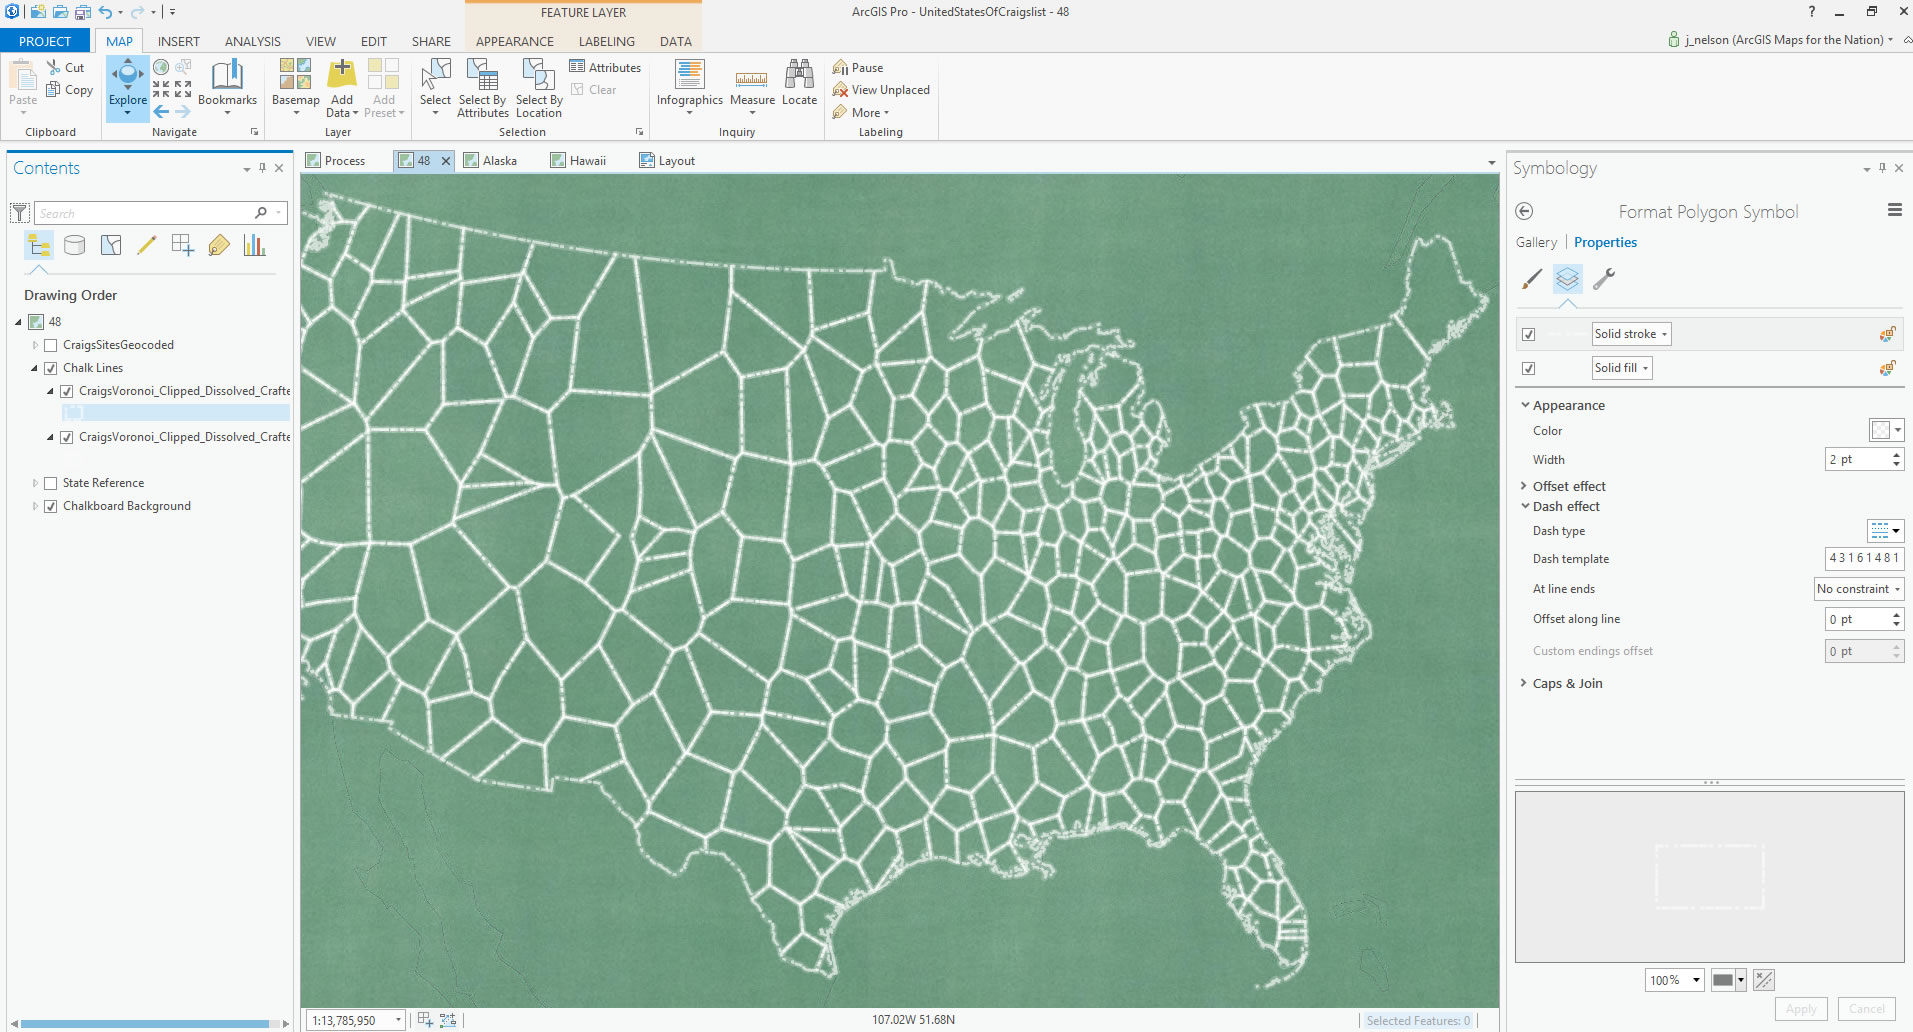 how to united states of craigslist chalkboard map adventures in